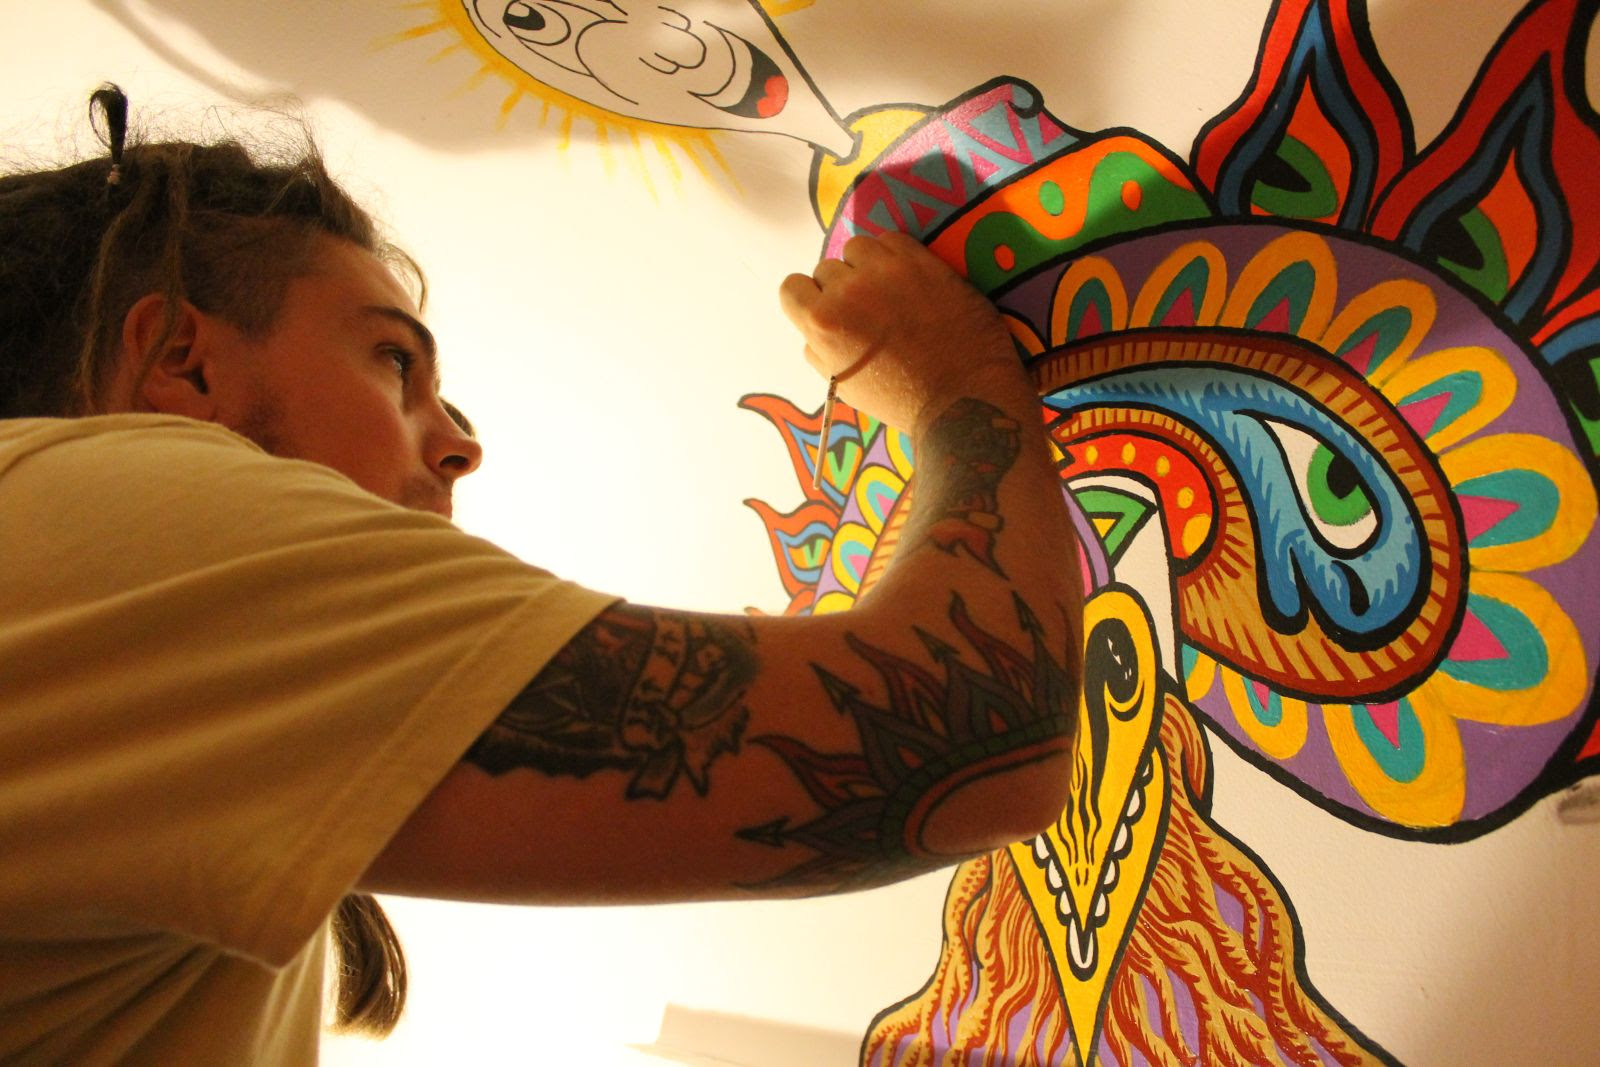 chris dyer muraling the mushroom cafe